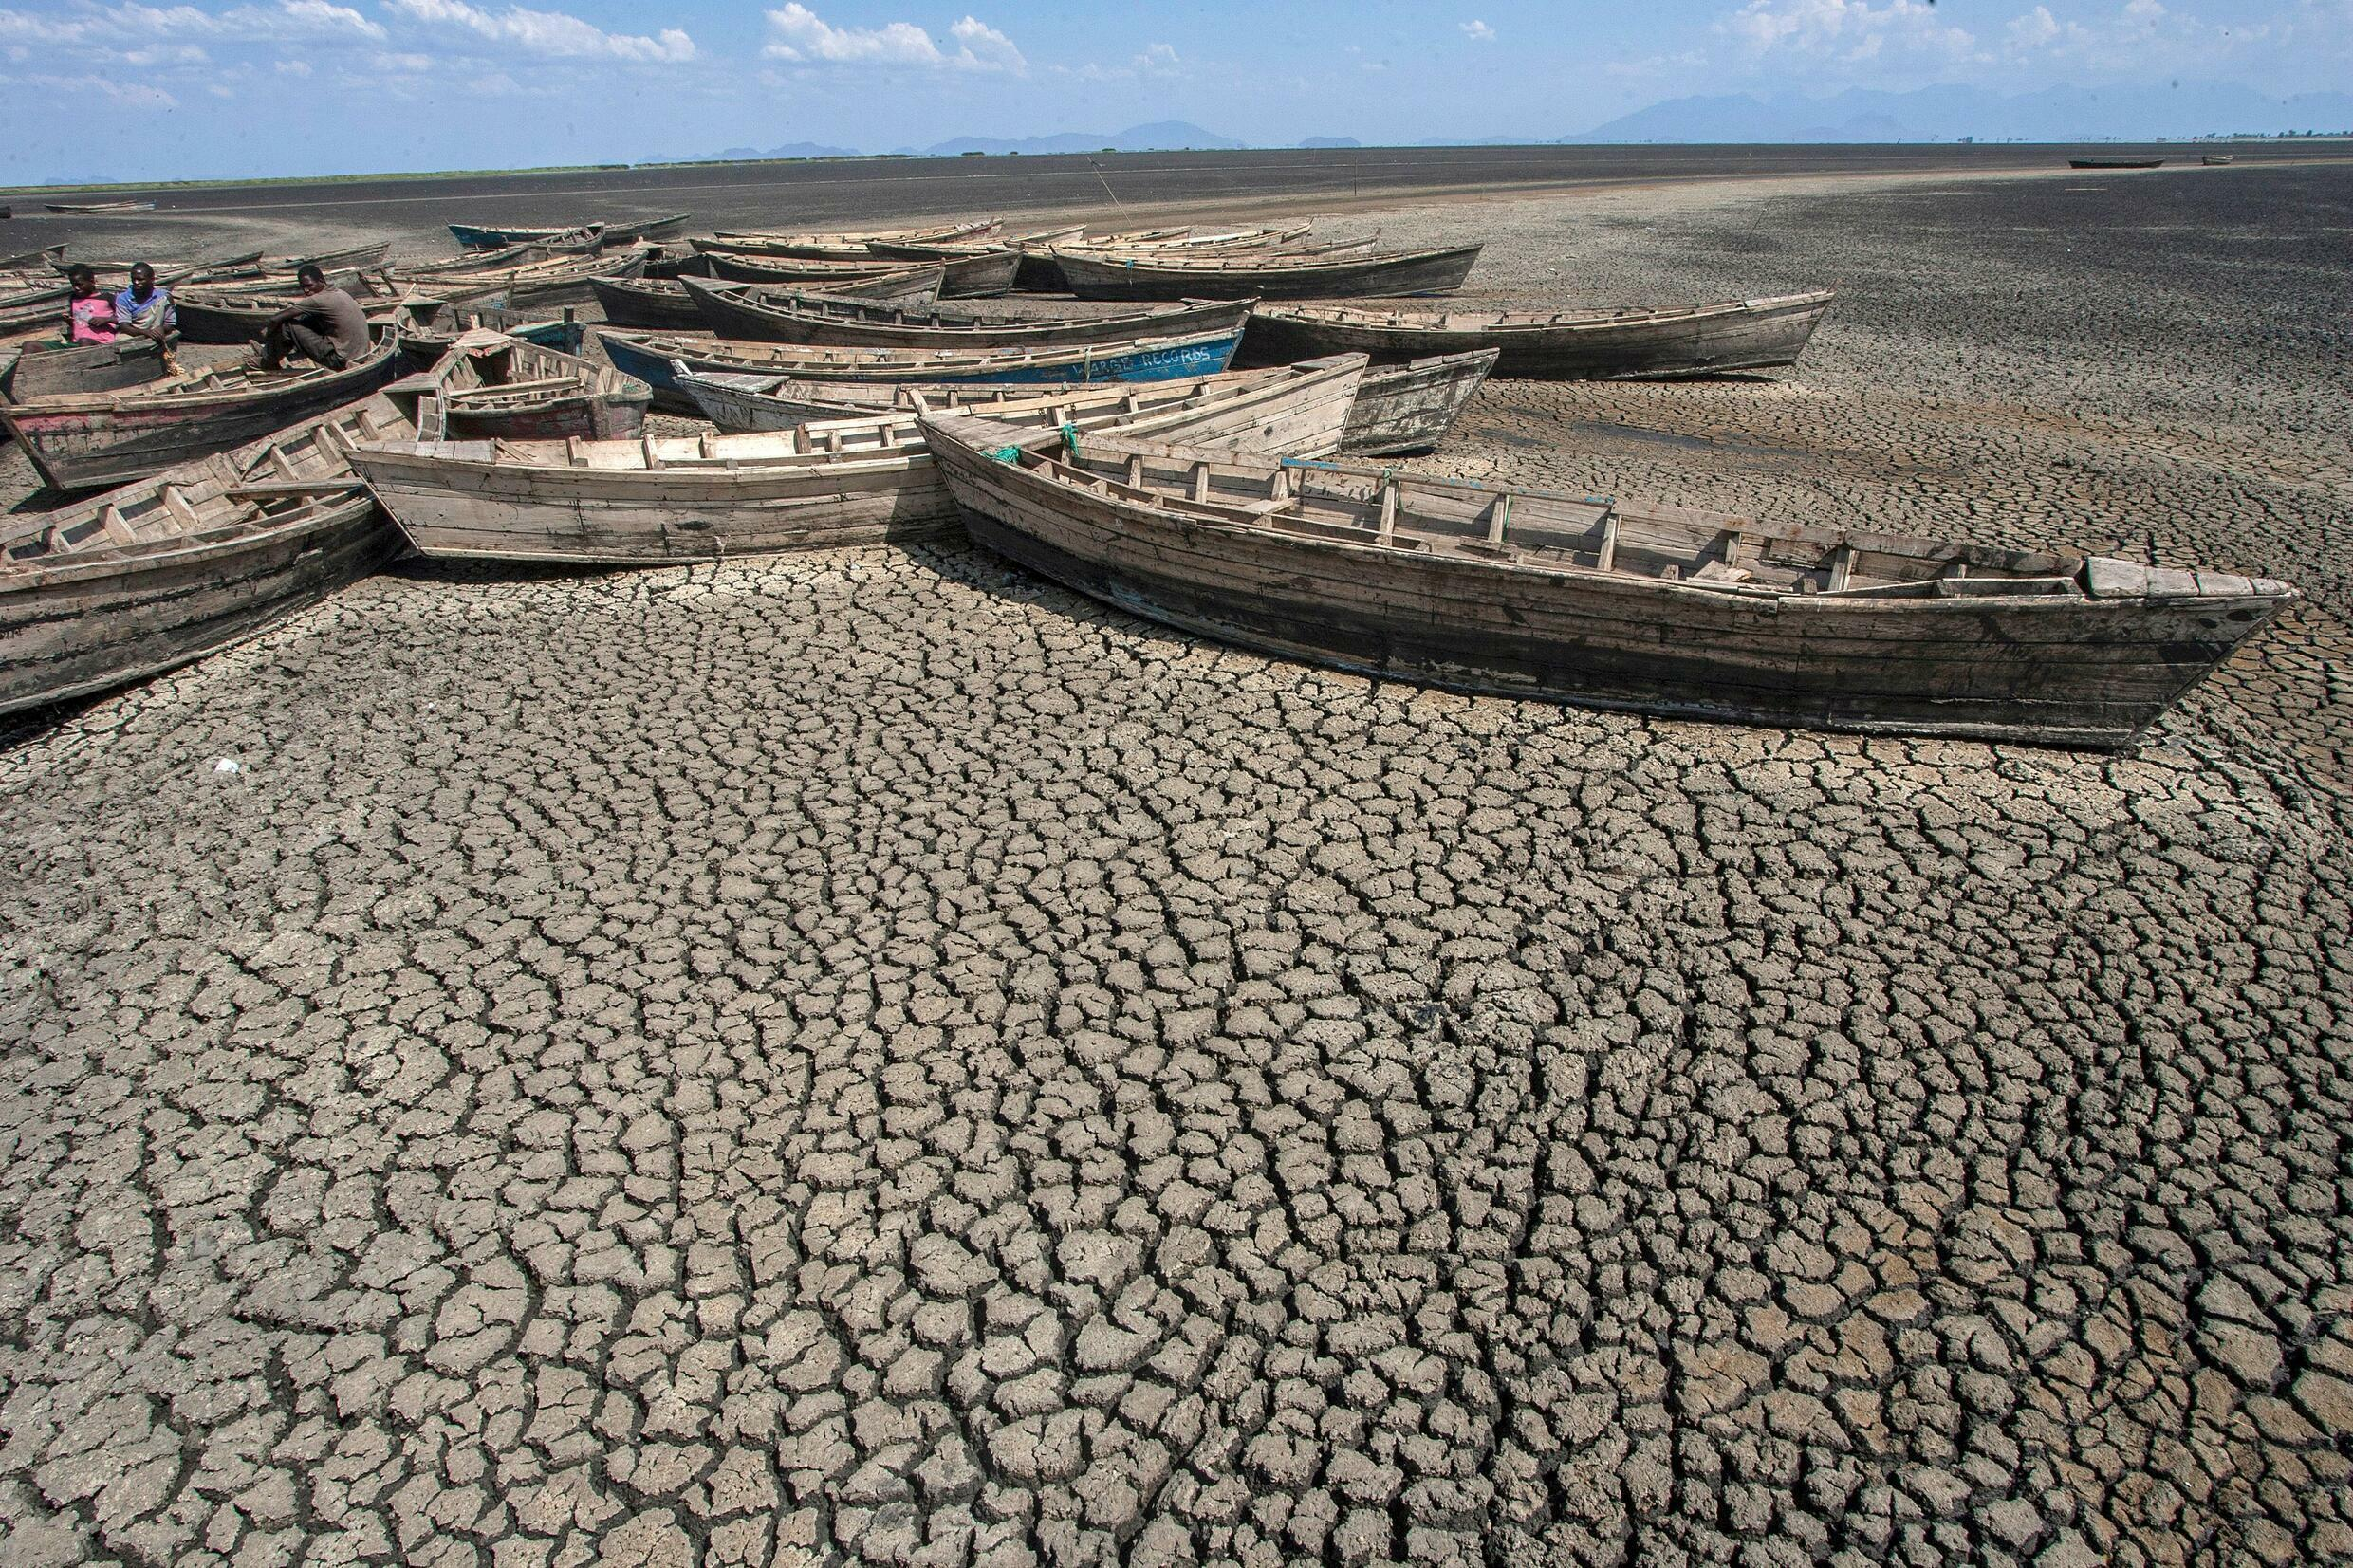 The IPCC report approved by 195 nations shines a harsh spotlight on governments ditheringin the face of mounting evidence that climate change is an existential crisis